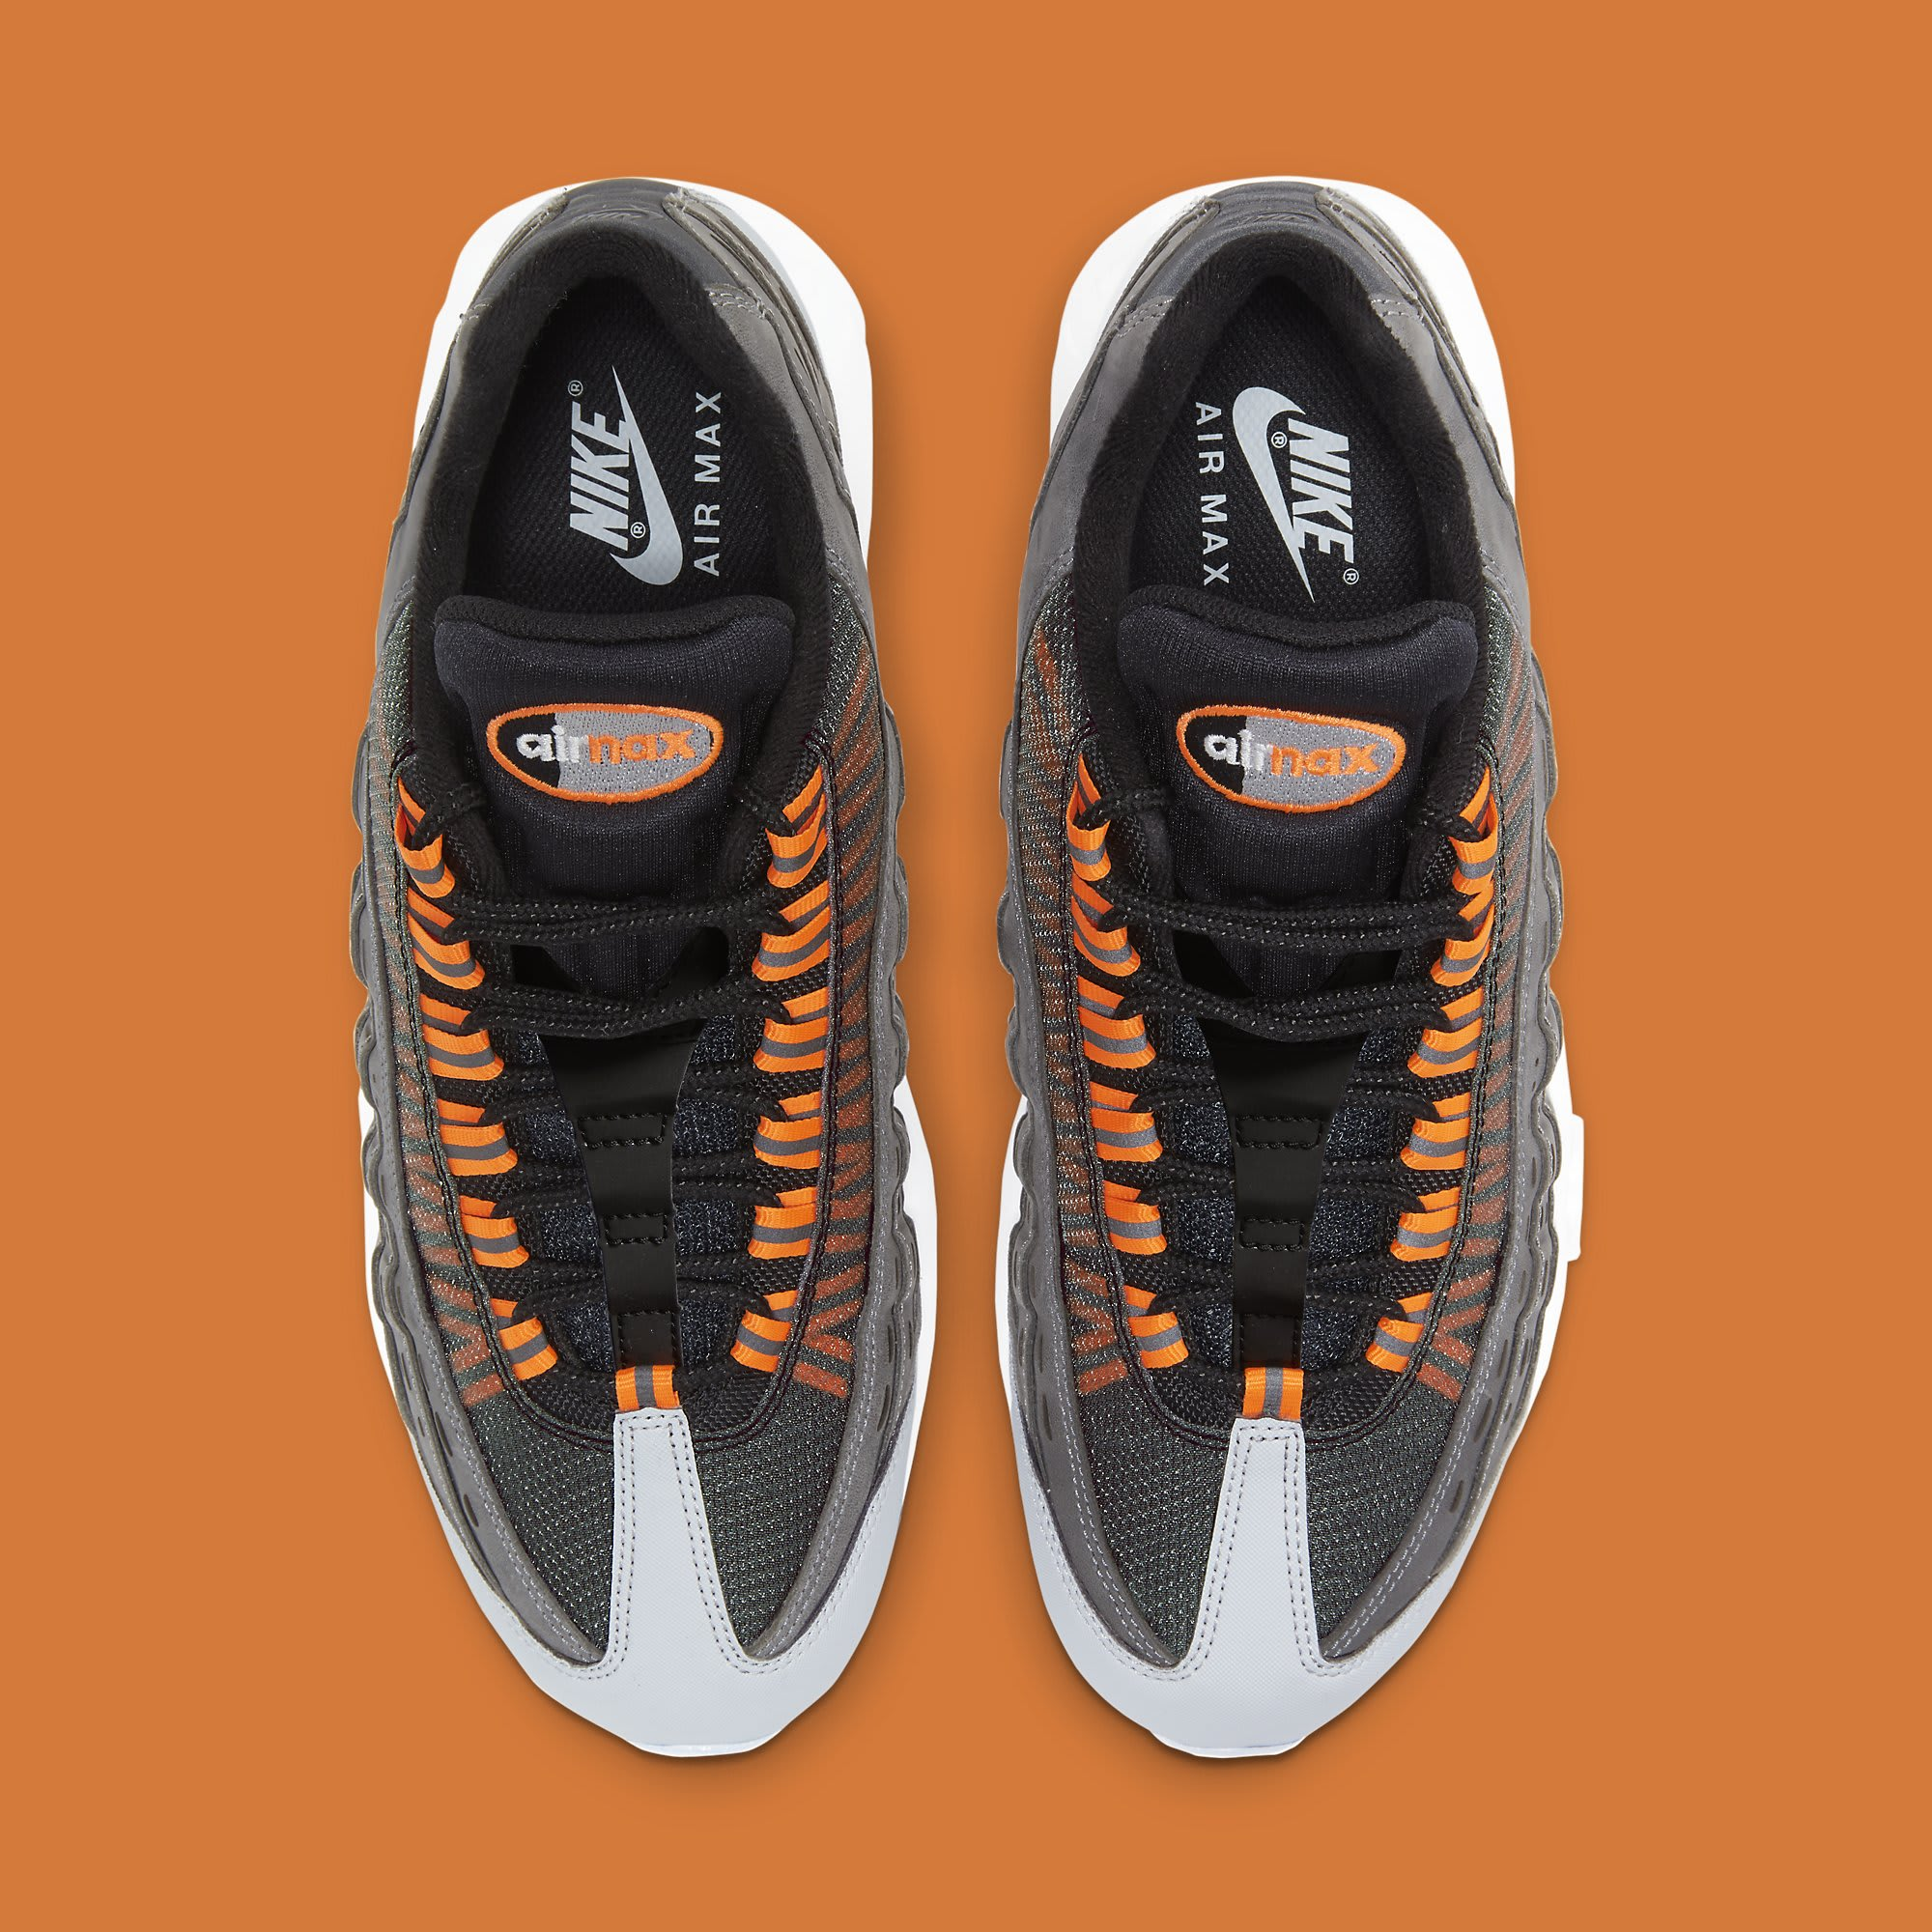 Kim Jones x Nike Air Max 95 Orange Release Date DD1871-001 Top